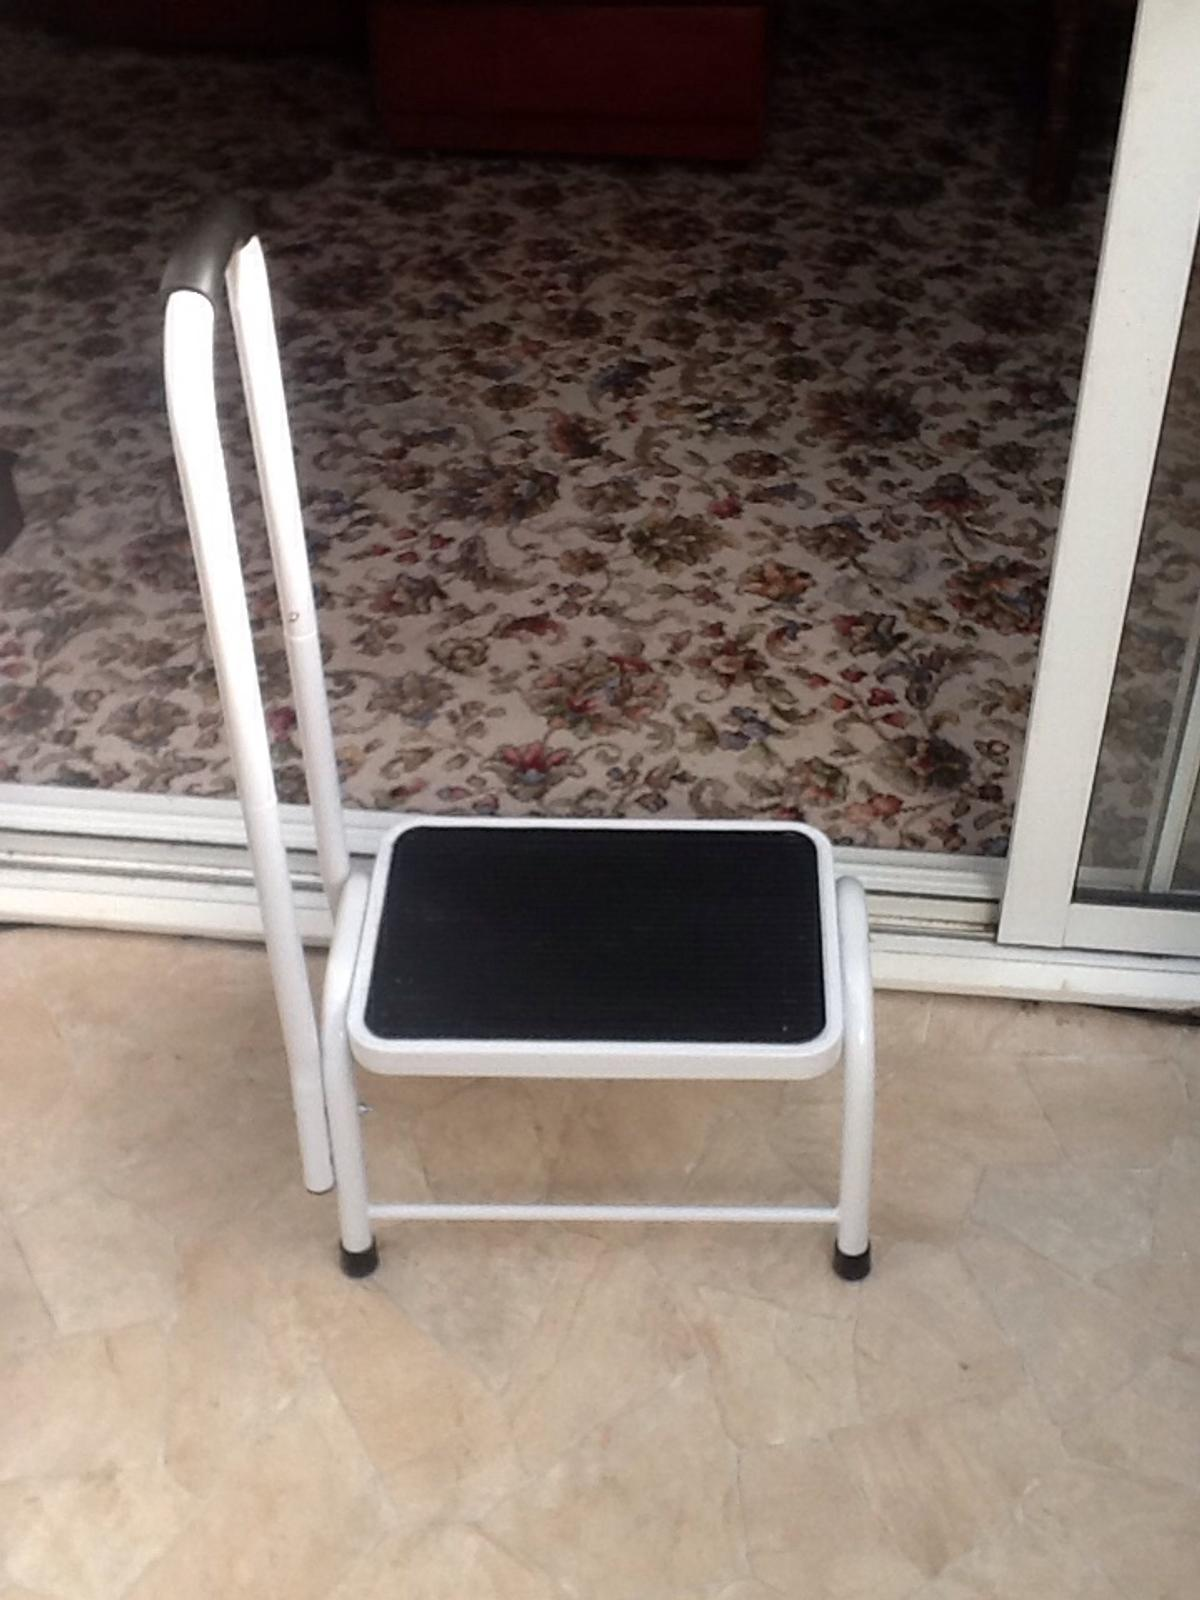 Step Stool With Handle Kitchen Caravan In Sk11 Gawsworth For 10 00 For Sale Shpock